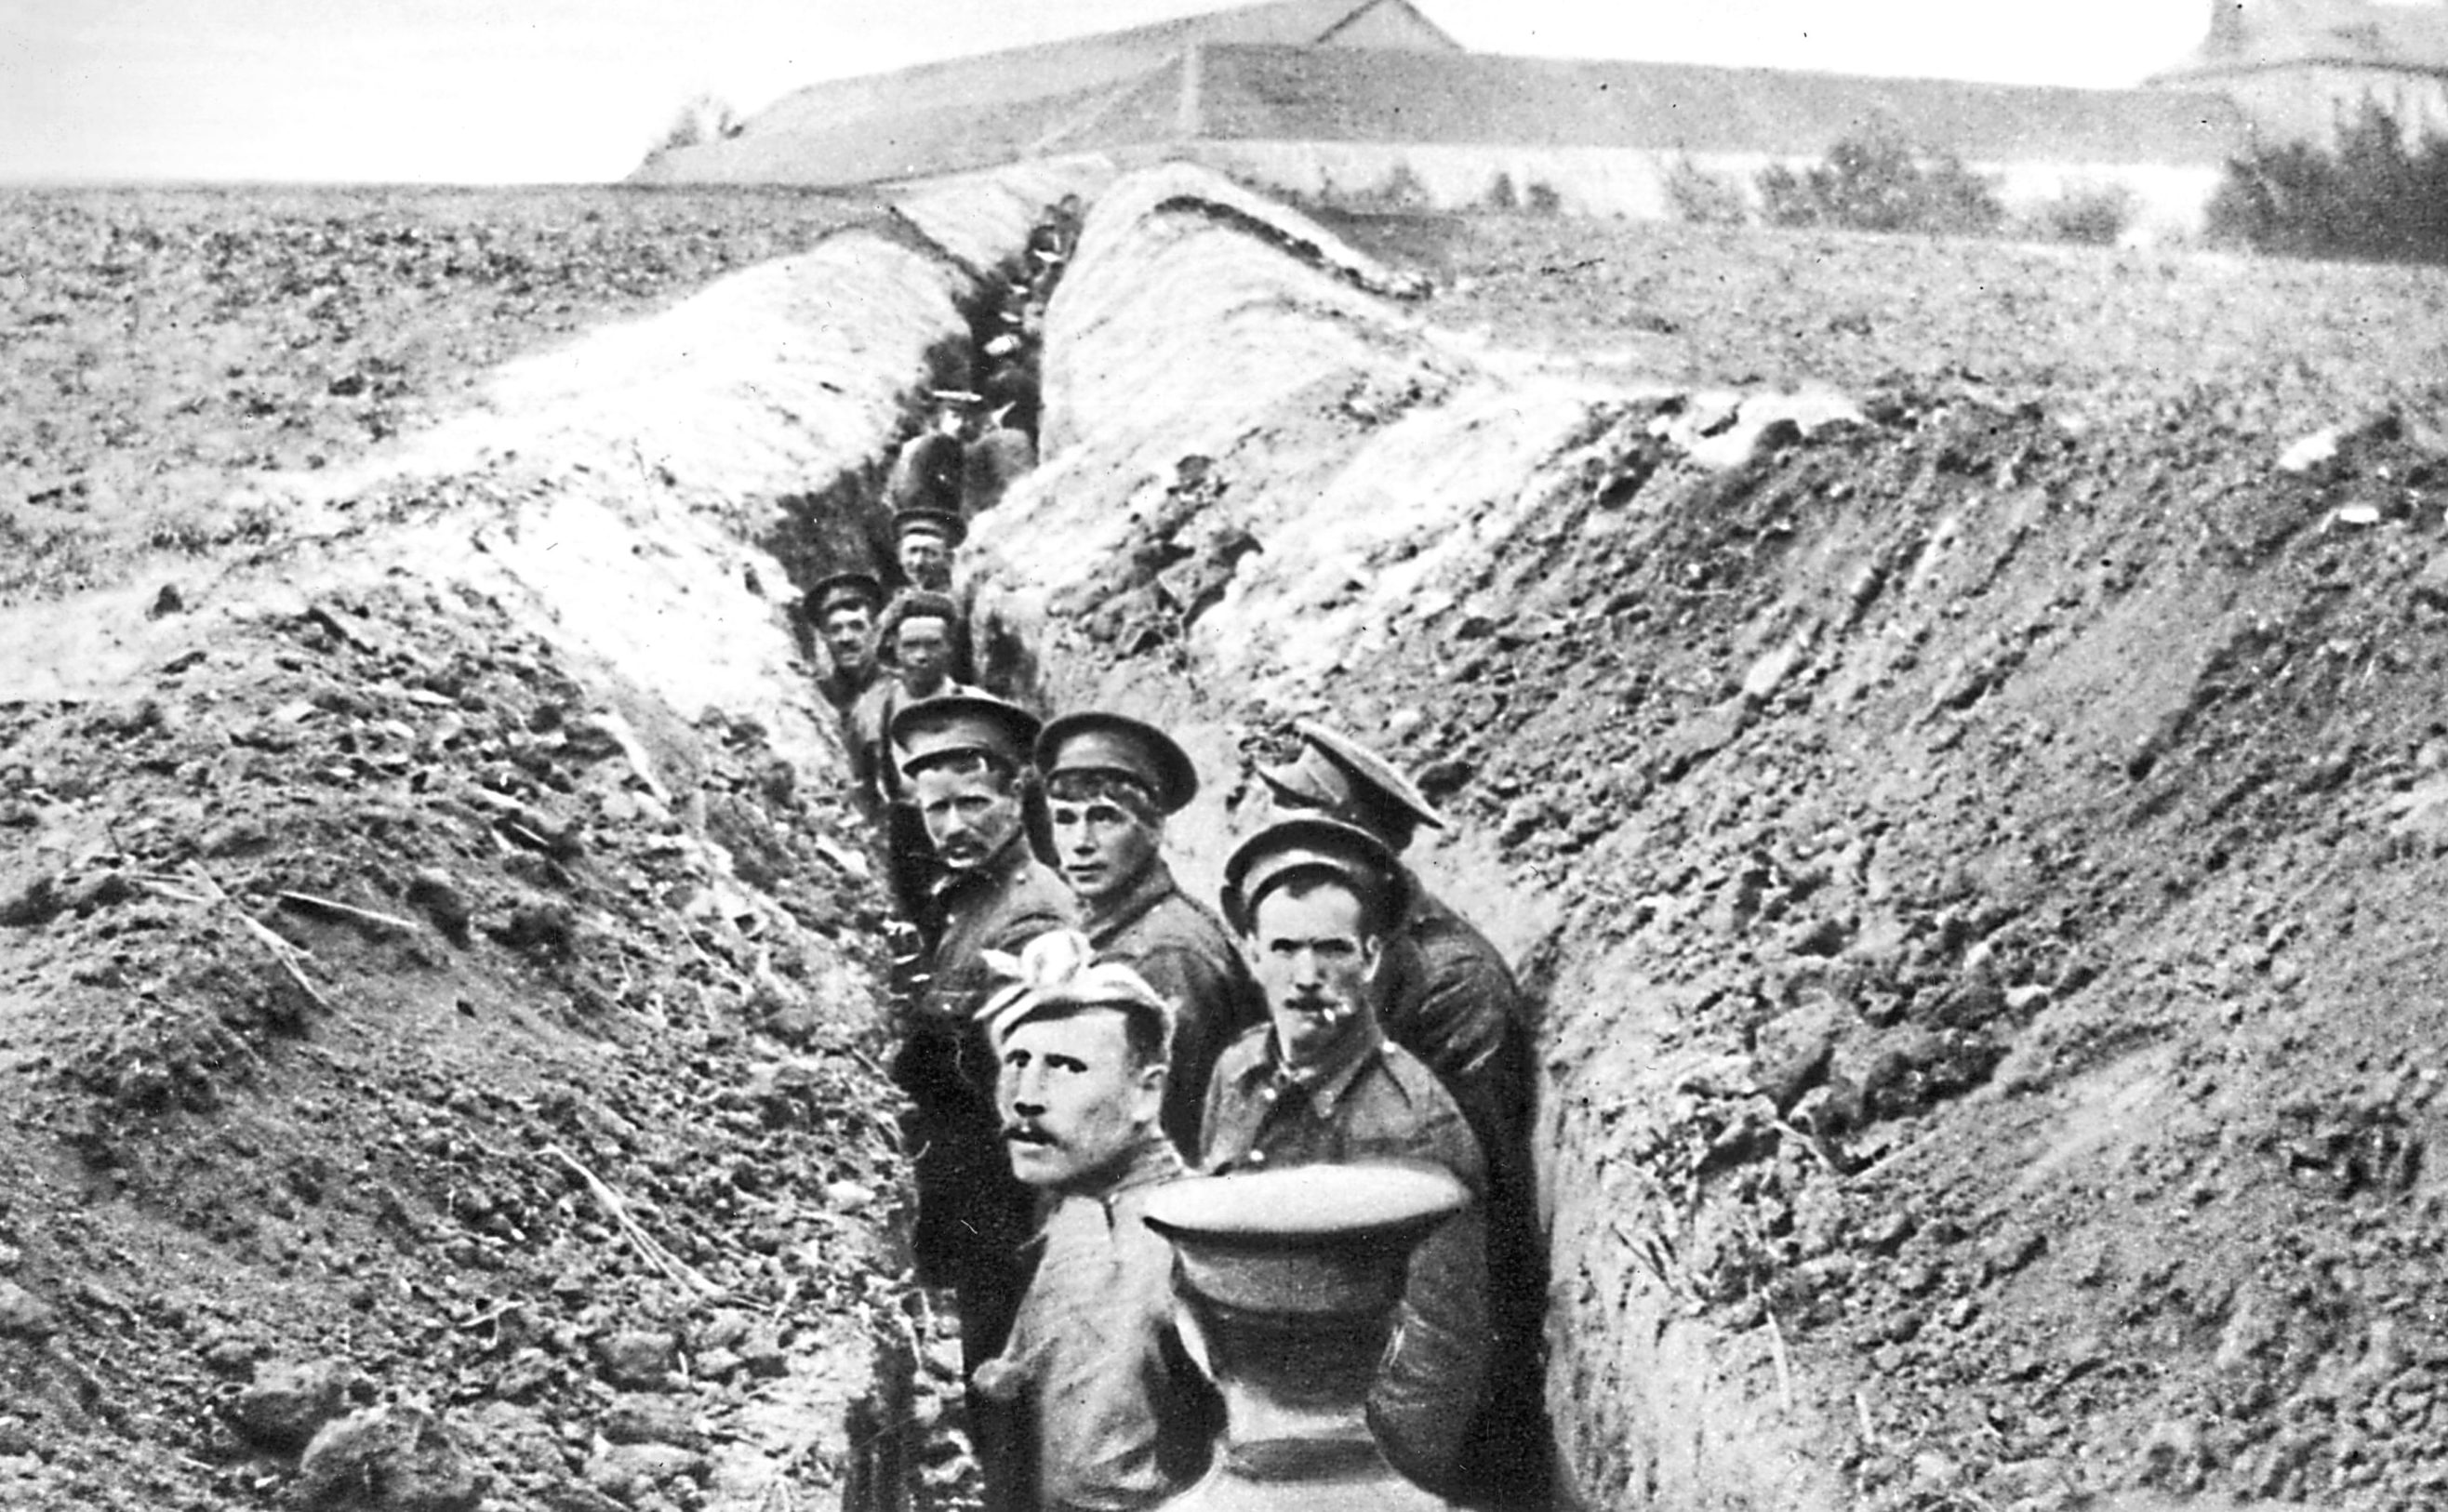 28th October 1914:  British soldiers lined up in a narrow trench during World War I.  (Hulton Archive/Getty Images)